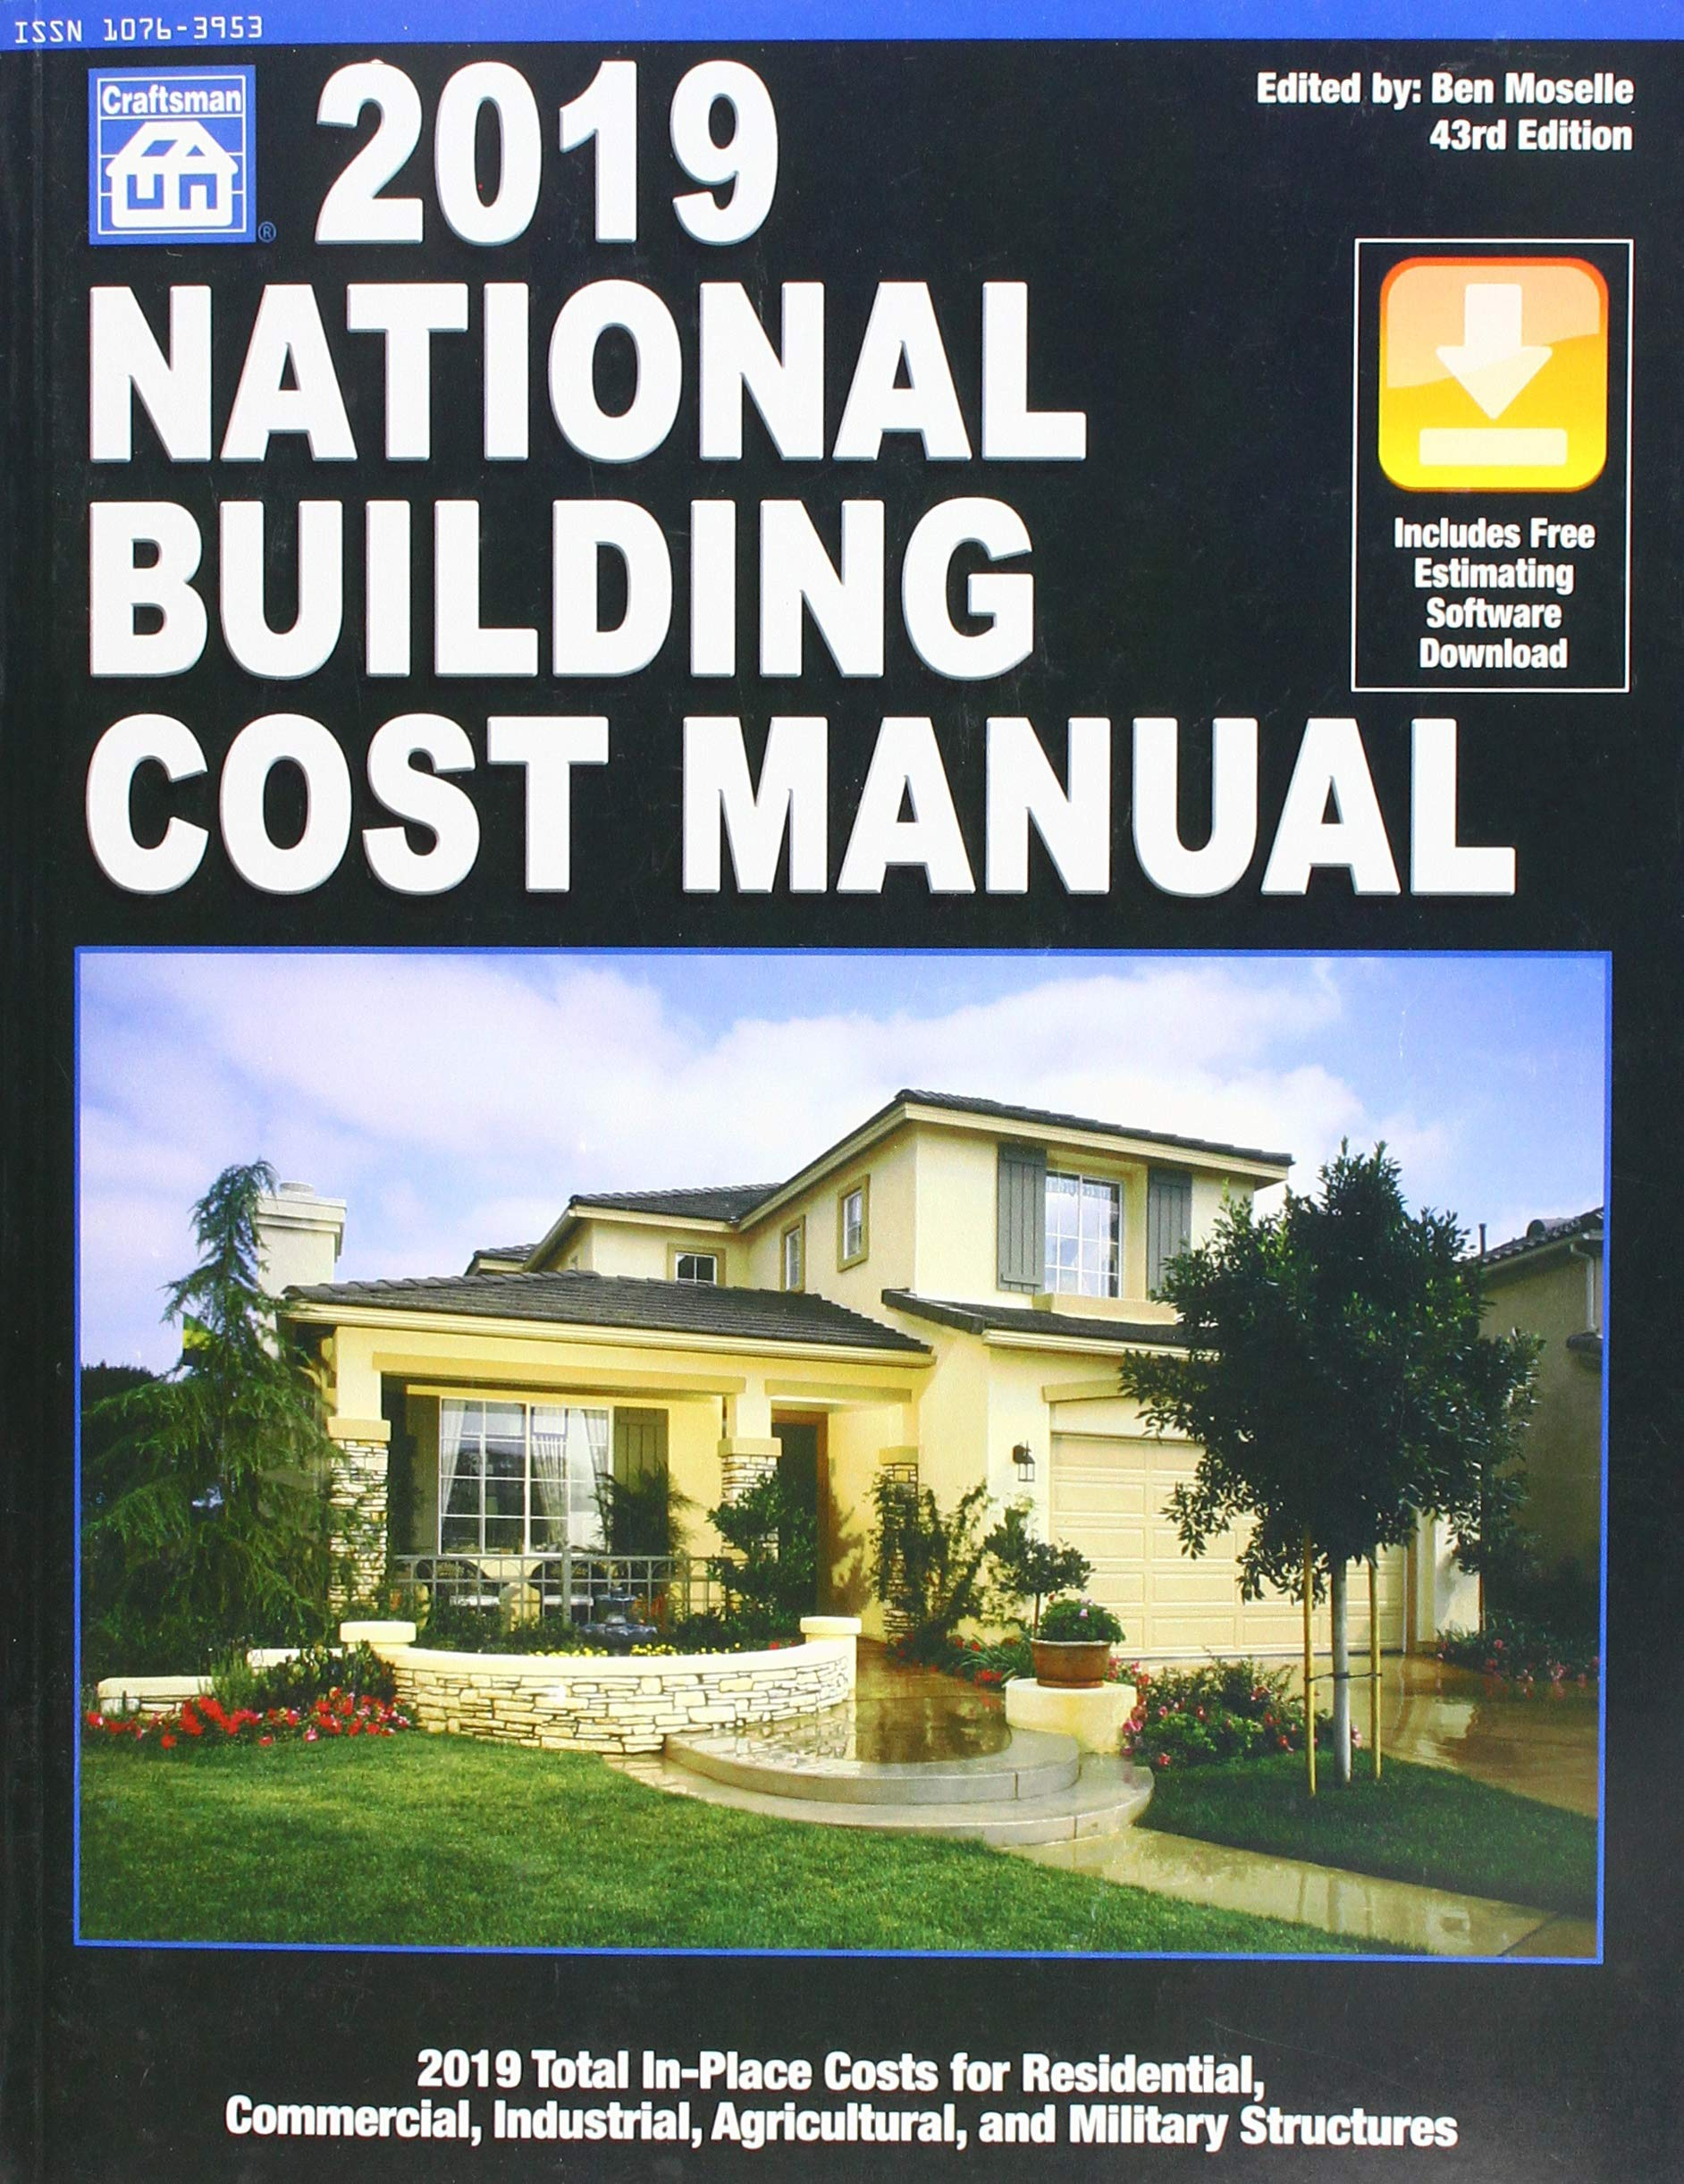 National Building Cost Manual 2019: Ben Moselle